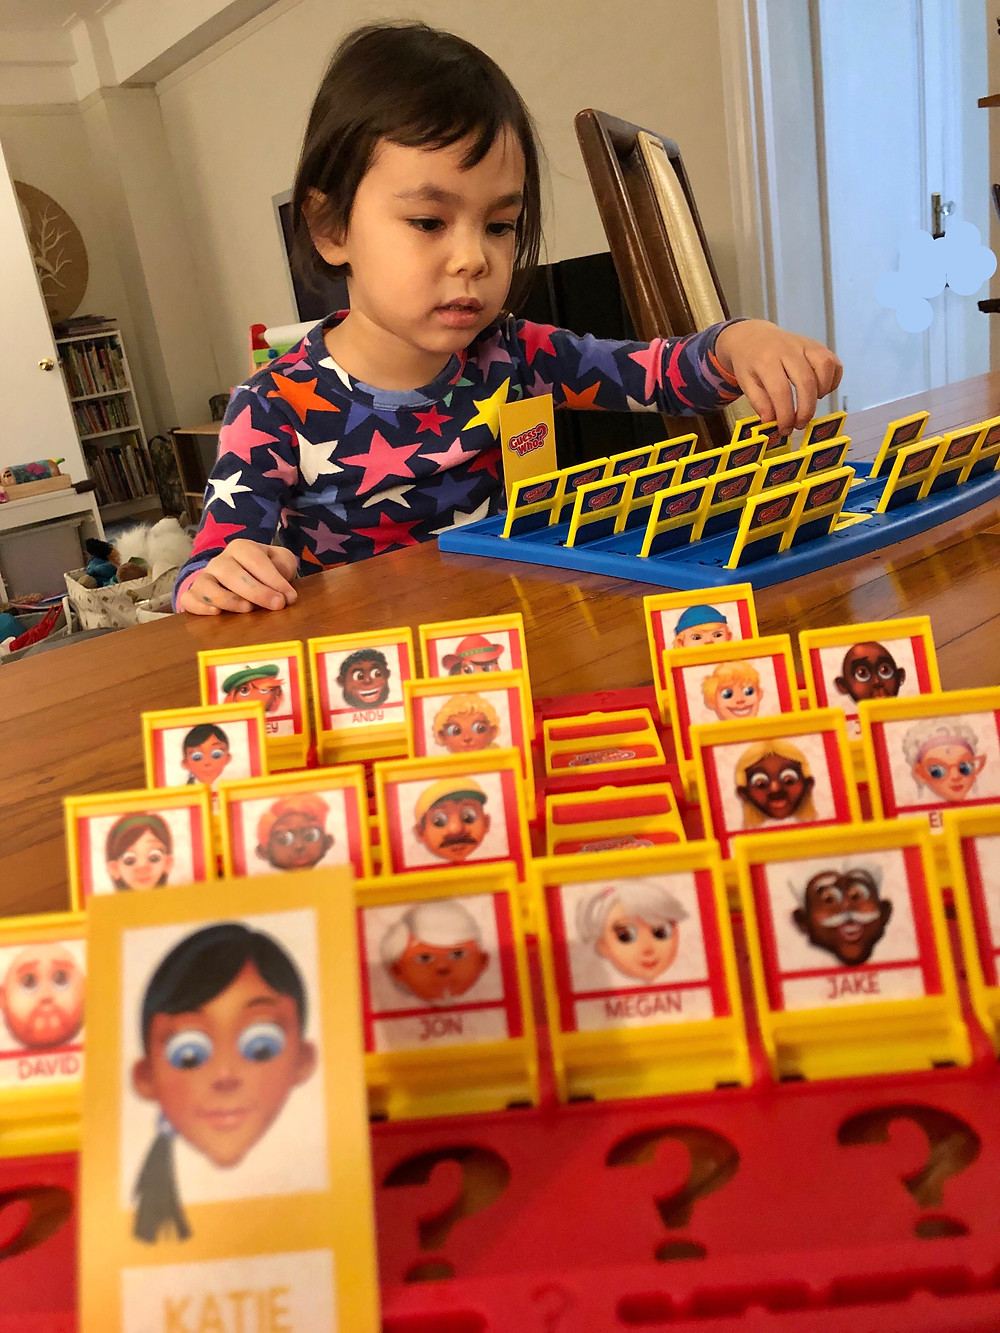 best floor puzzles for toddlers, Curious G and Me, Best board games for toddlers, Guess Who board game, Hasbro games for toddlers